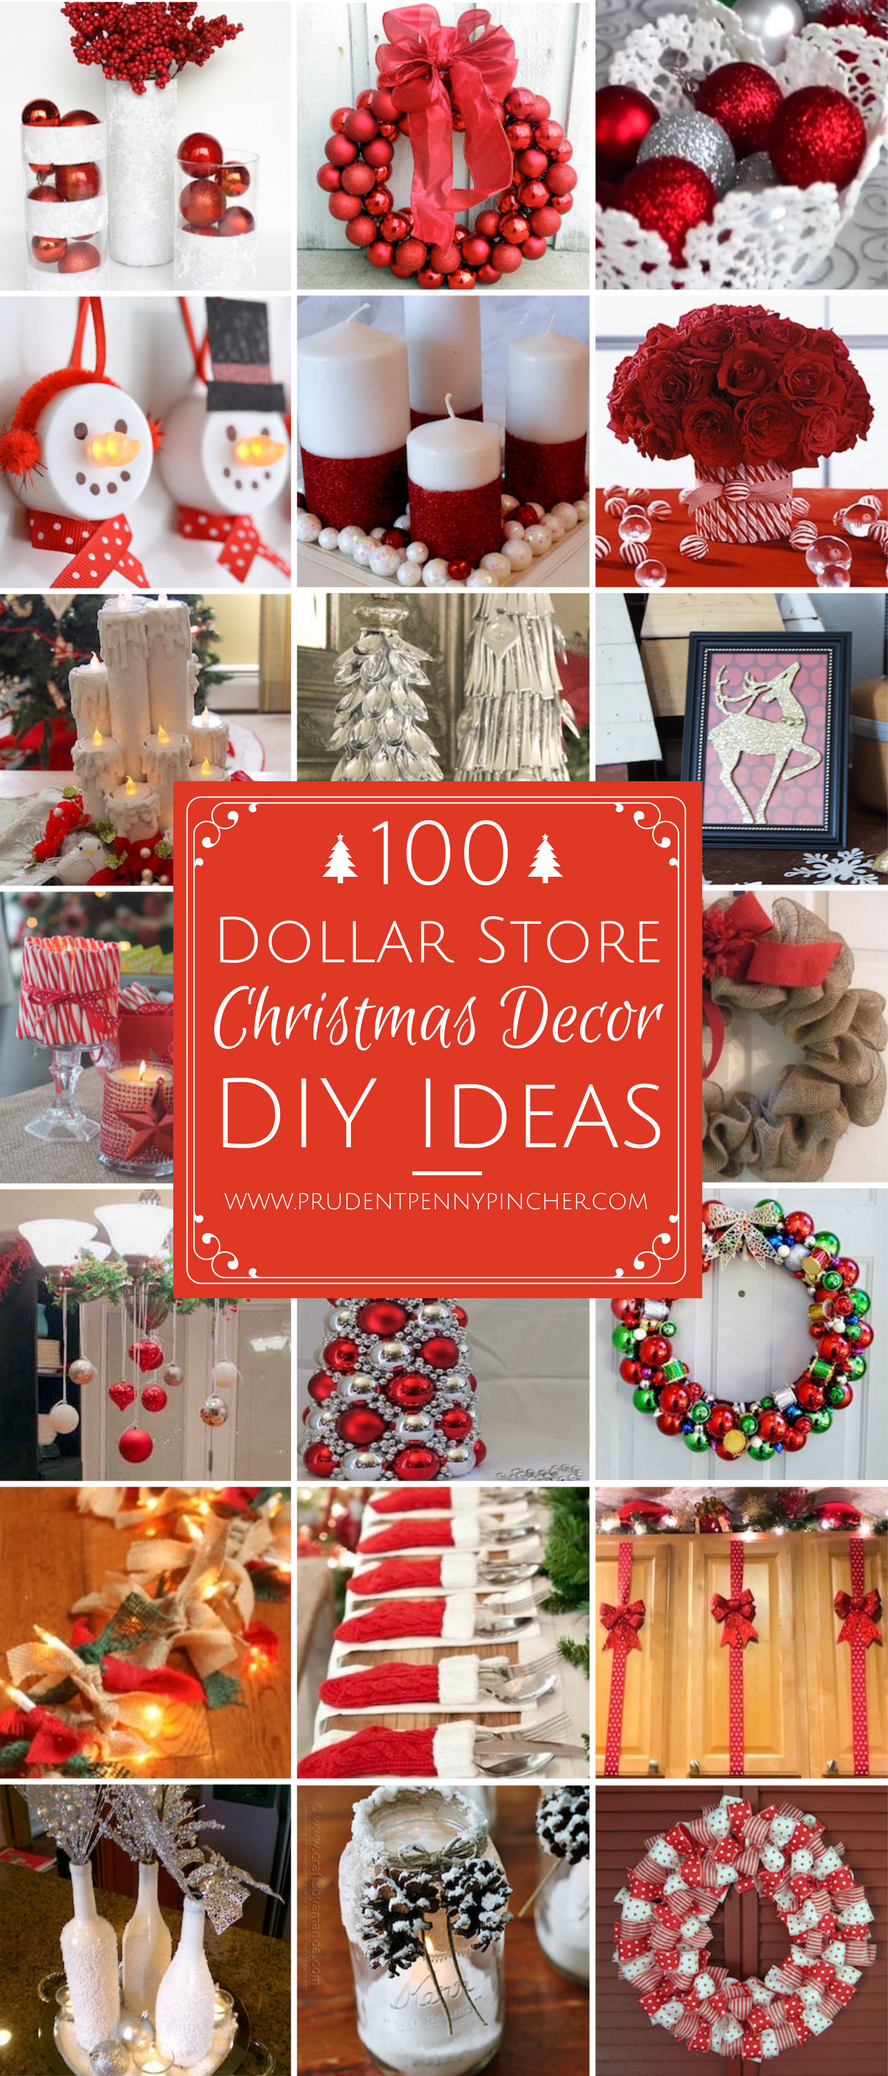 100 Diy Dollar Store Christmas Decor Ideas Dollar Store Christmas Christmas Decor Diy Christmas Decorations